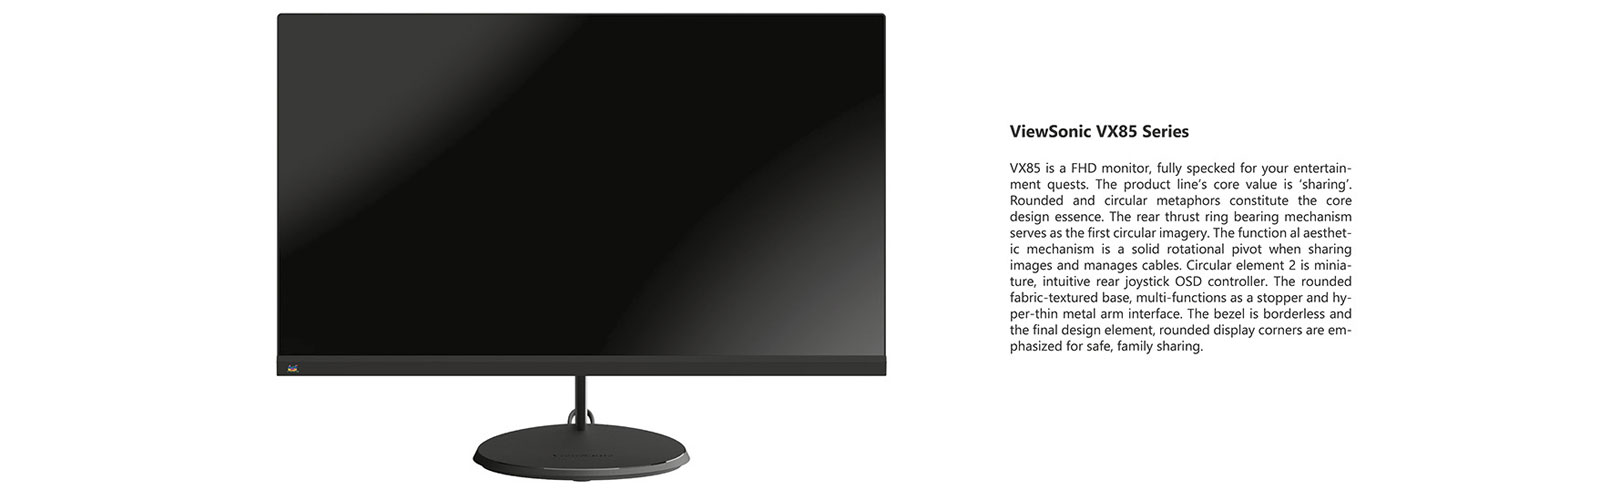 The ViewSonic VX85 monitor series is launched with the VX2485 and VX2785 models